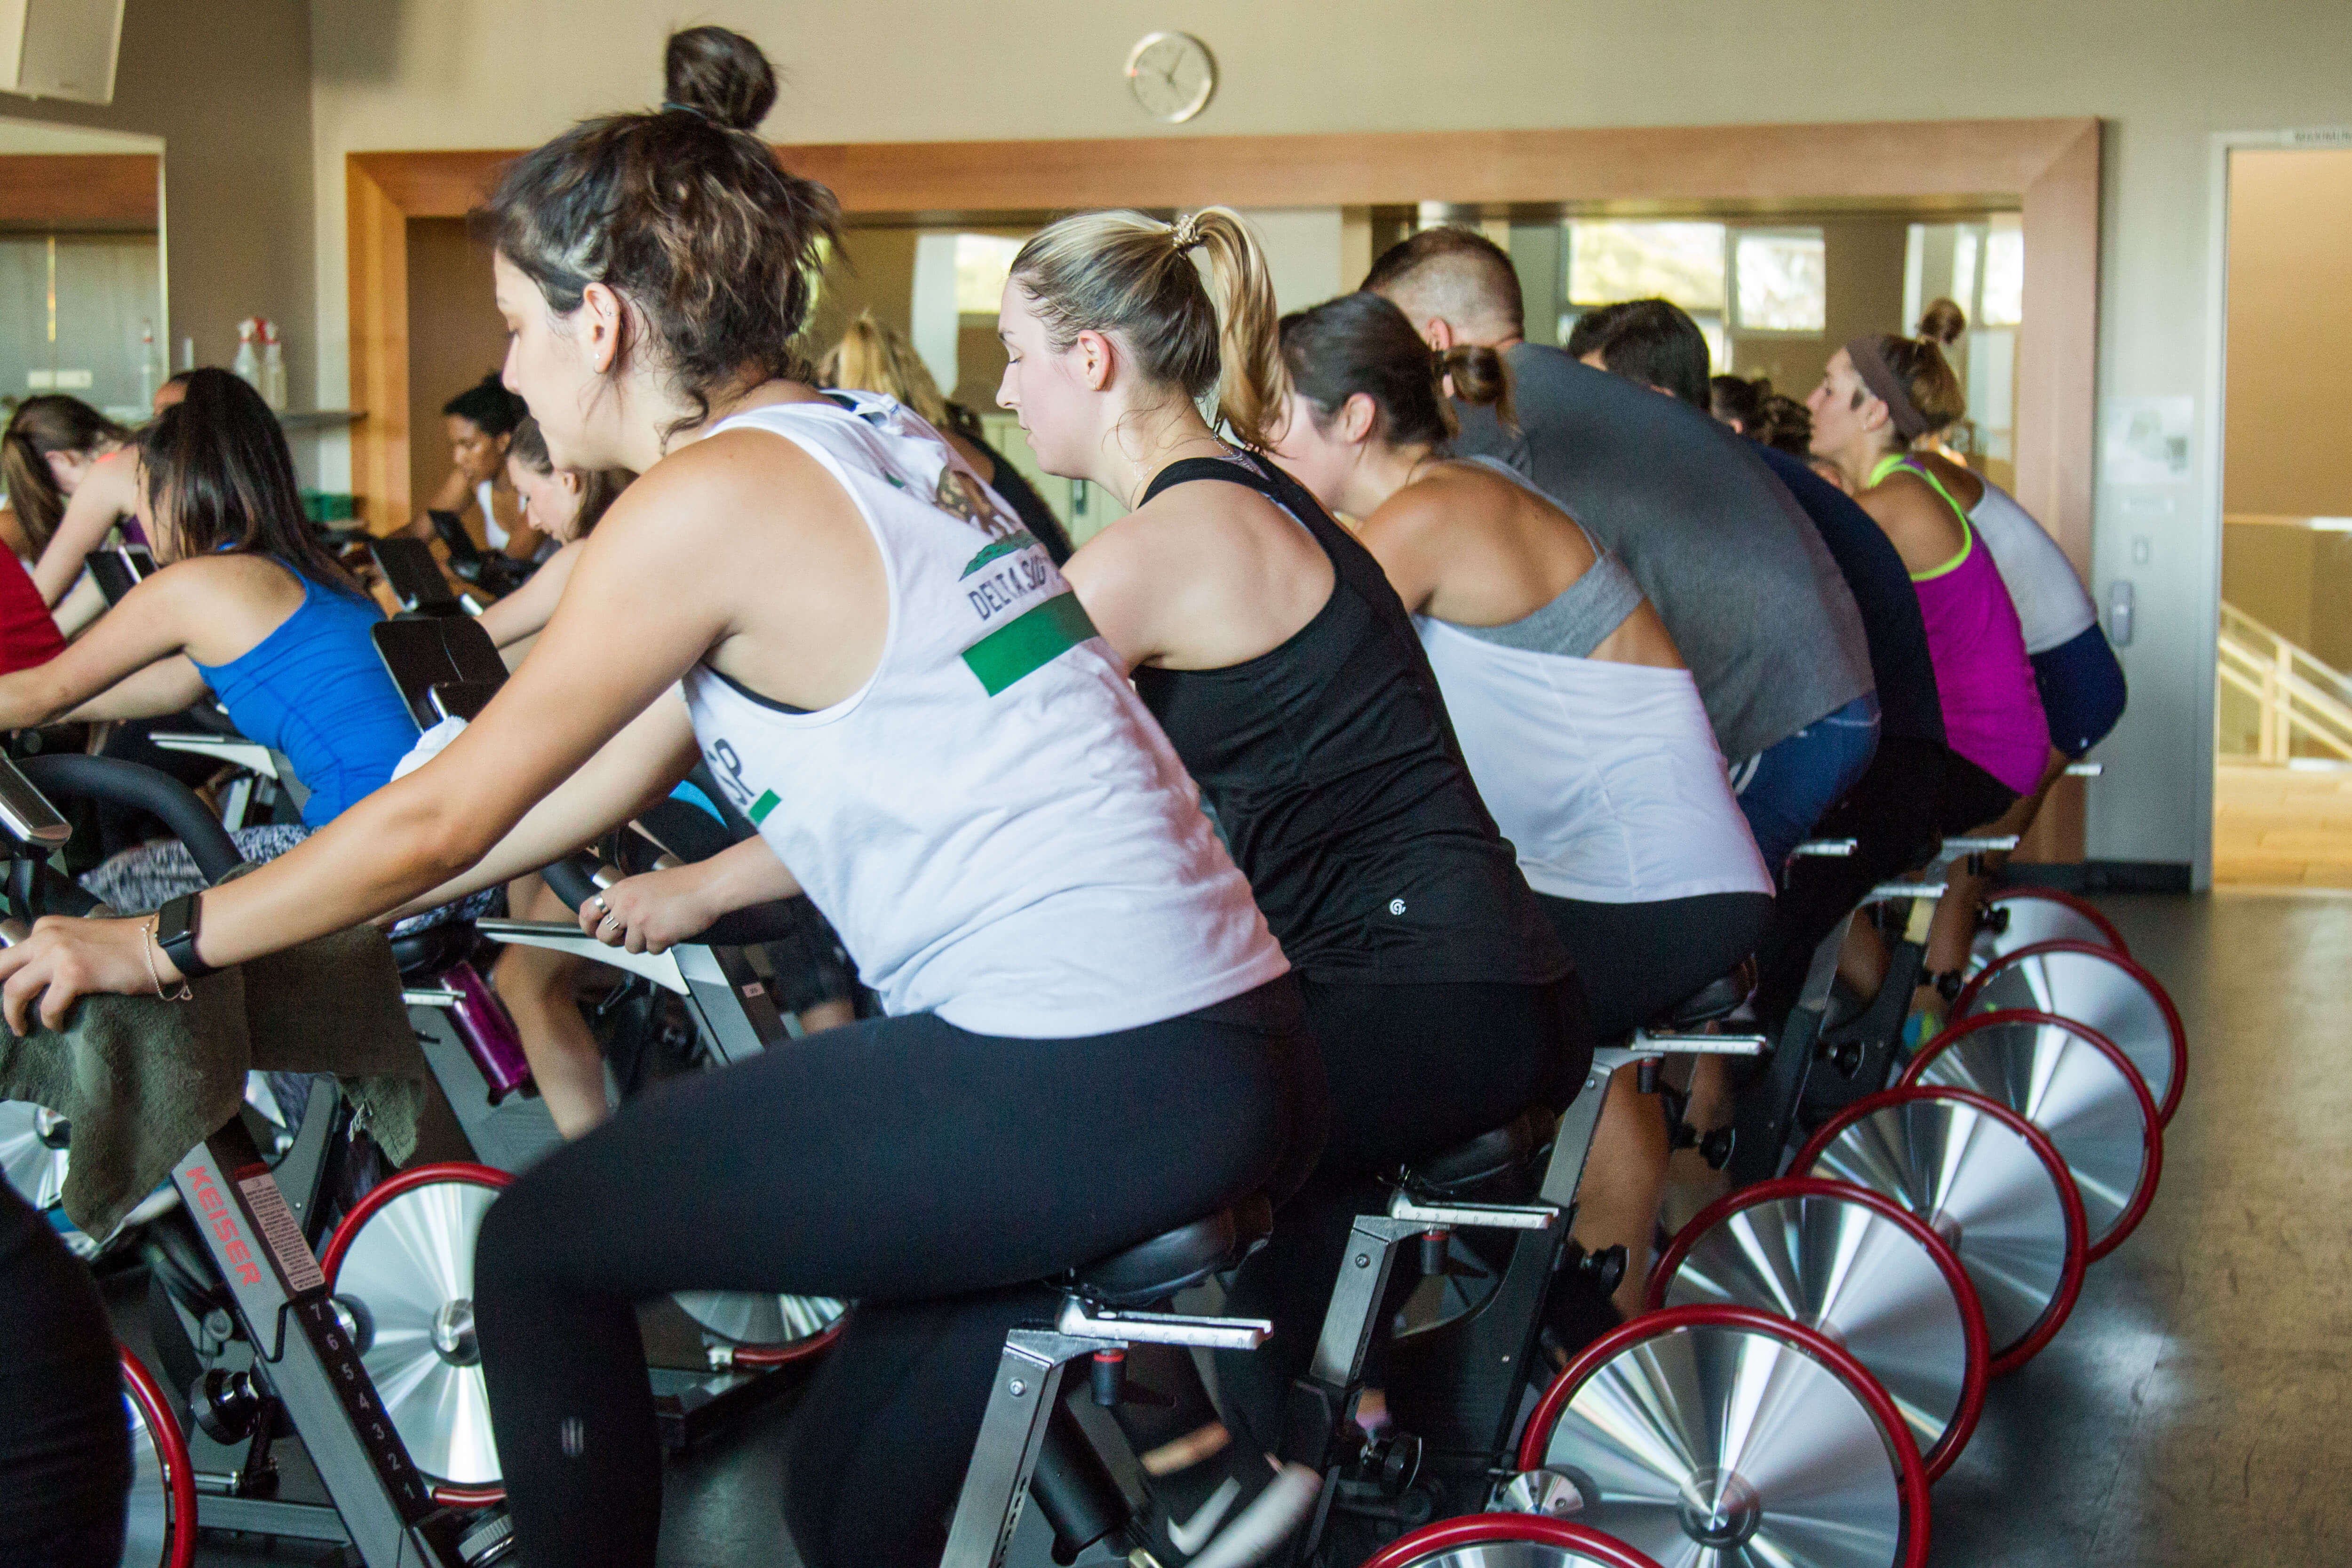 Students participate in an indoor cycling class